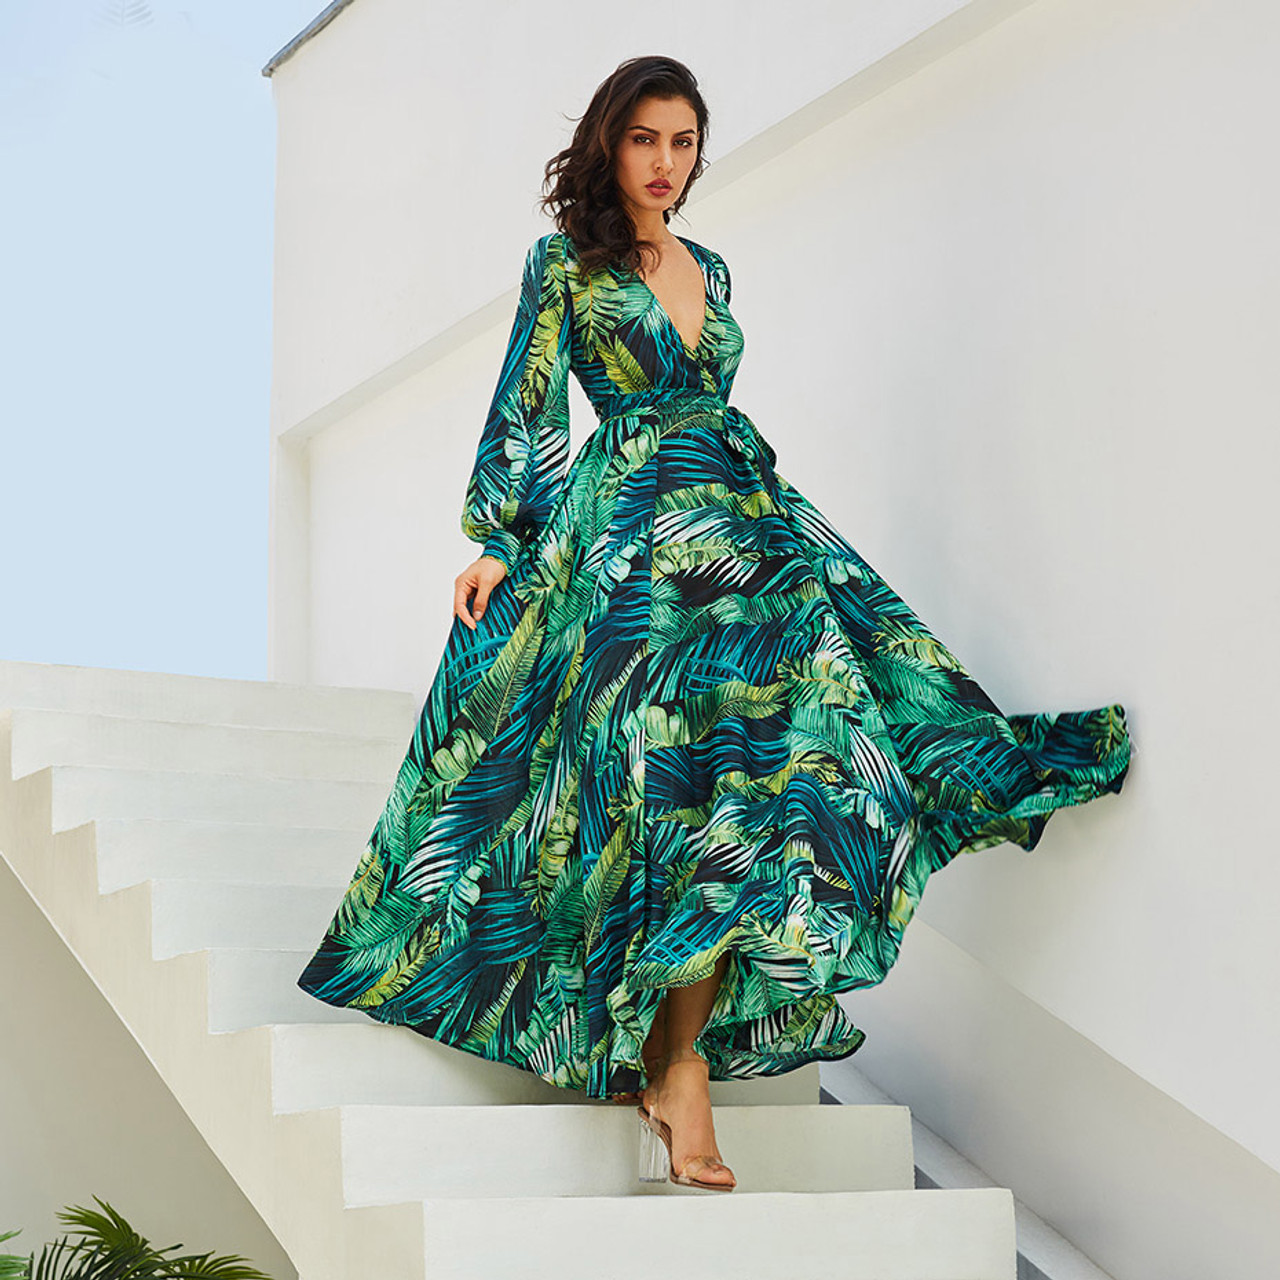 a896ea1ee04 Long Sleeve Dress Green Tropical Print Vintage Maxi Dresses Boho ...